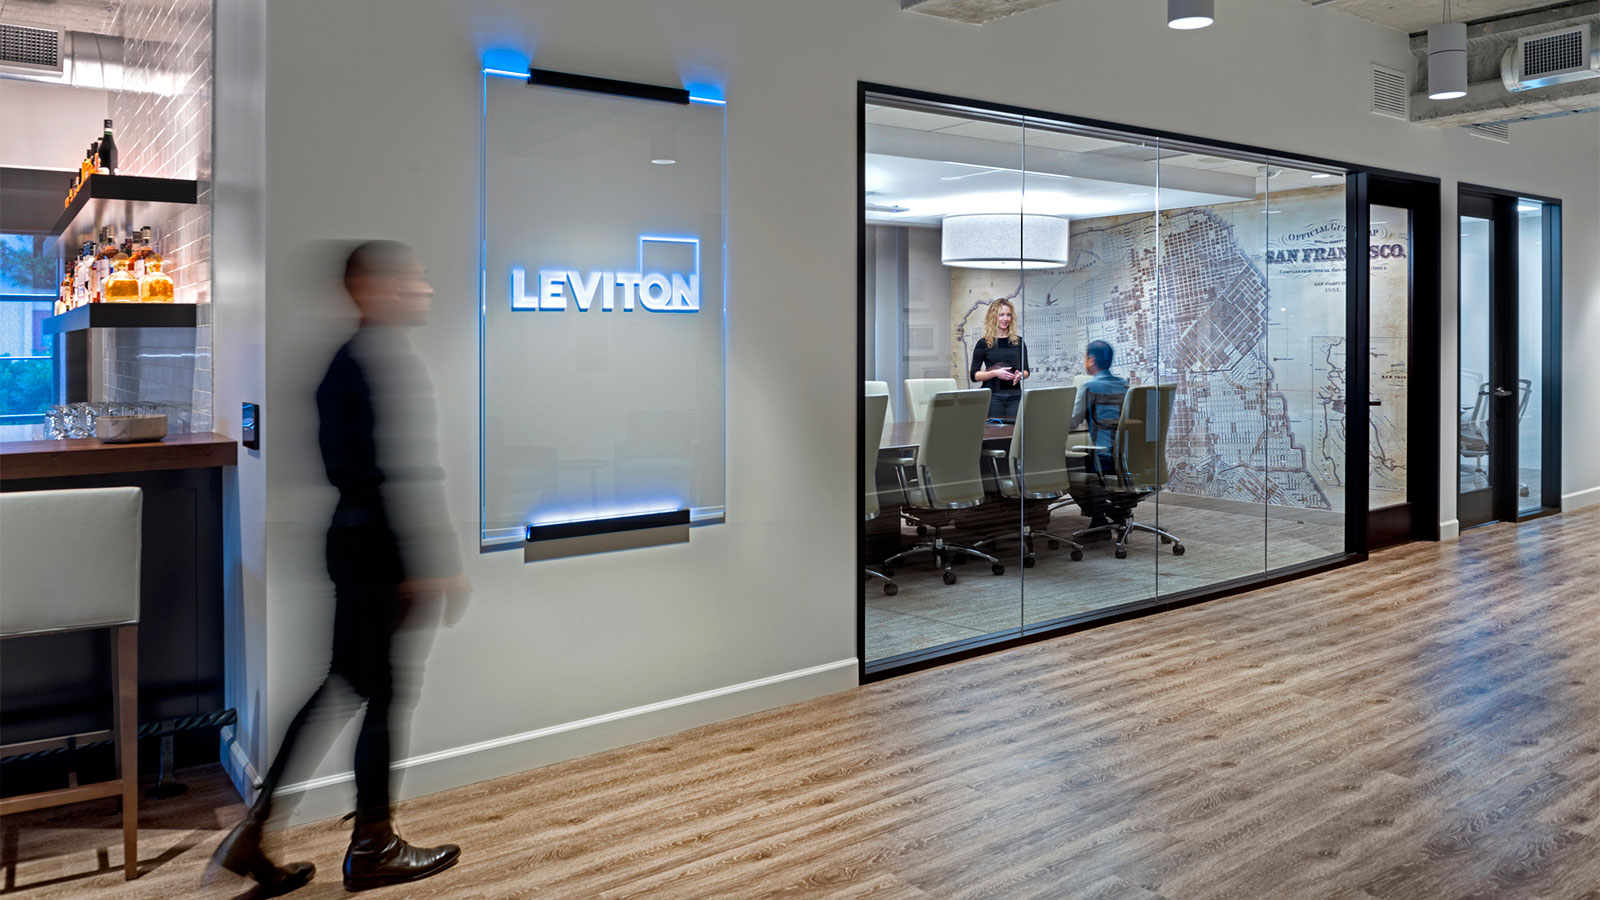 Leviton – IA Interior Architects